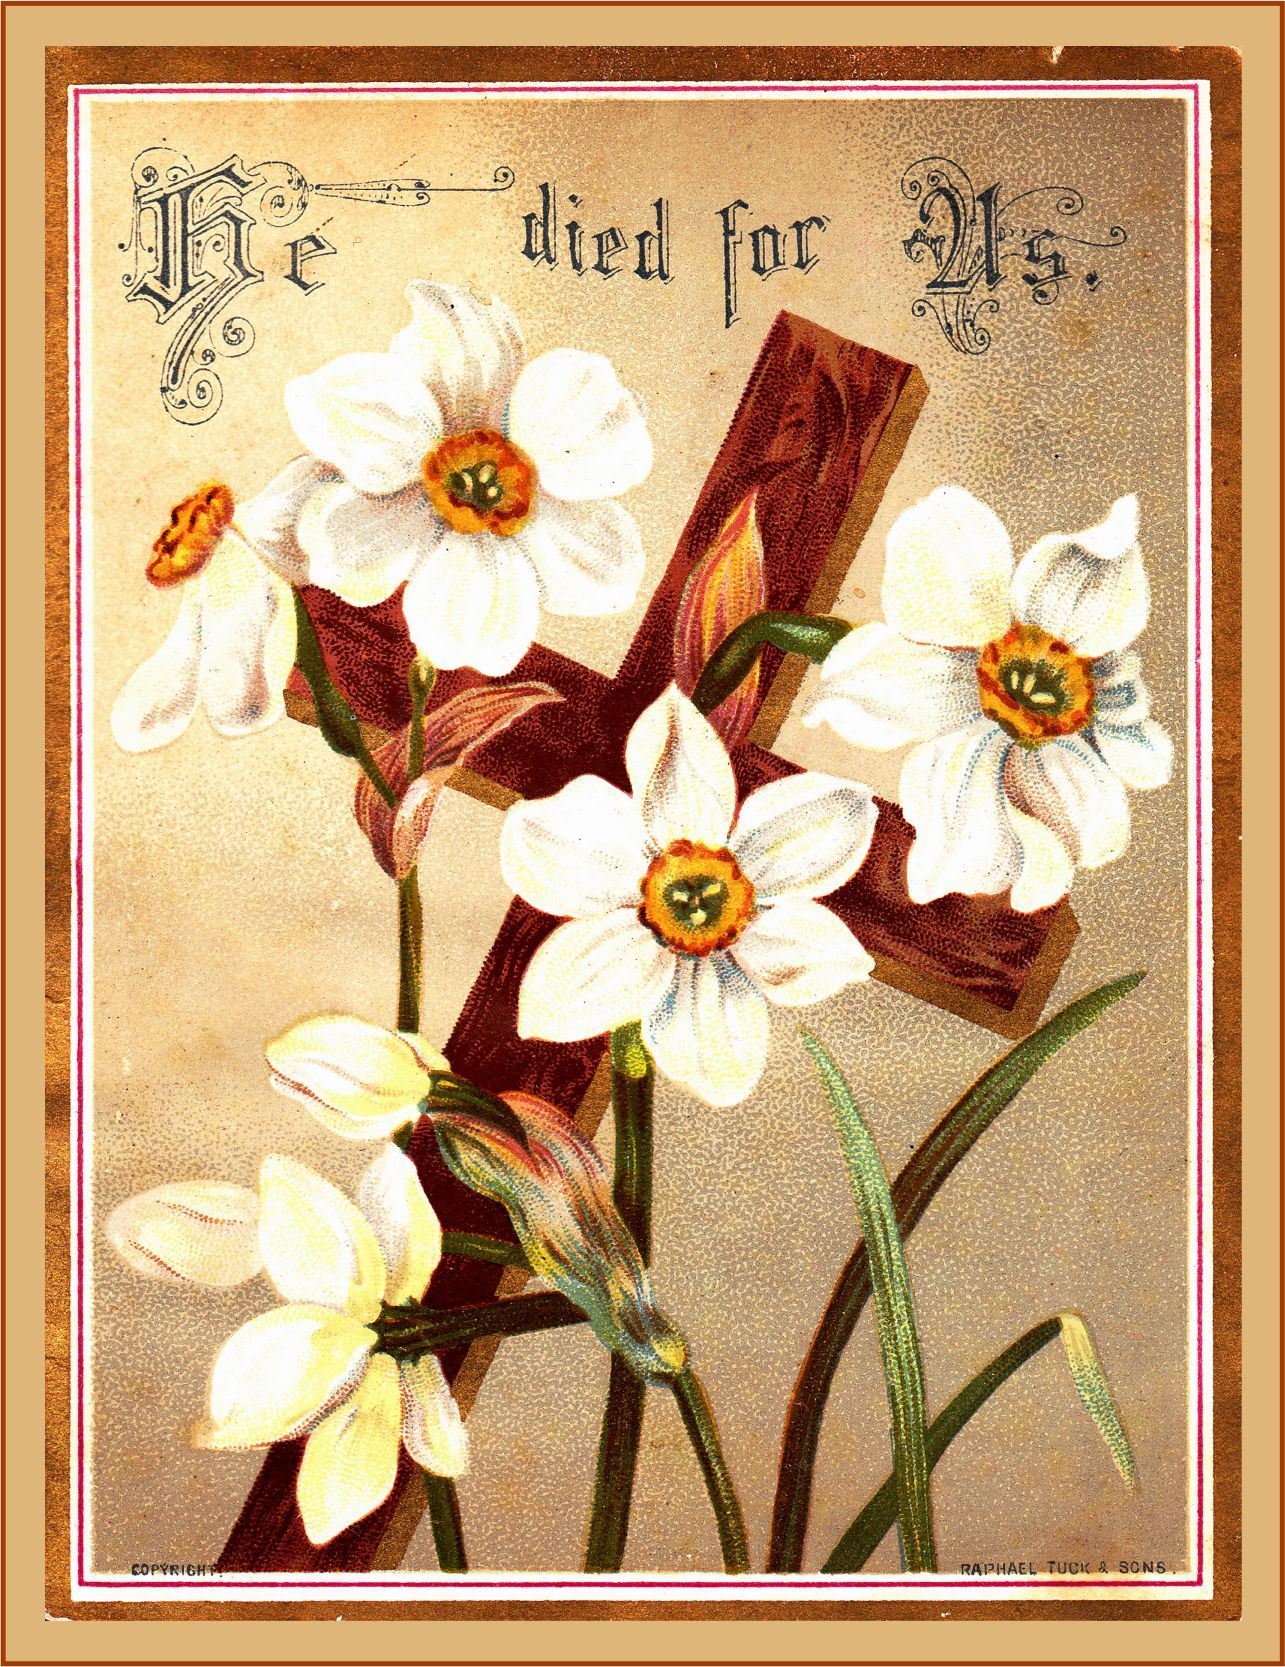 Free vintage easter postcard he died for us easter - Christian easter images free ...